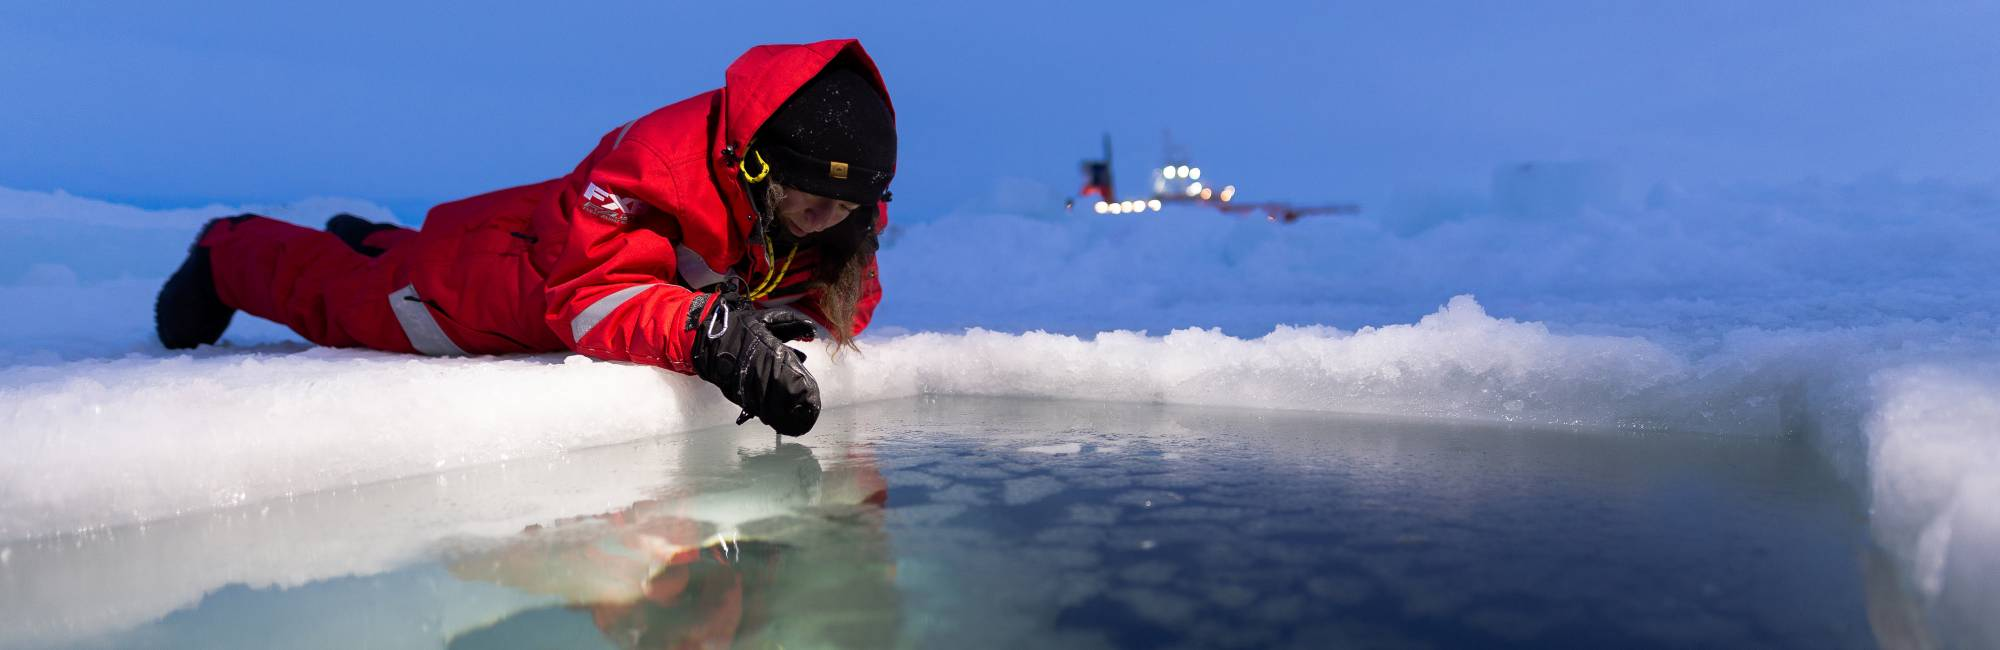 A woman dressed in heavily insulated gear lies on her stomach on the ice, looking into a pool of water. There is an icebreaker ship lit with electric lights far off in the distance.